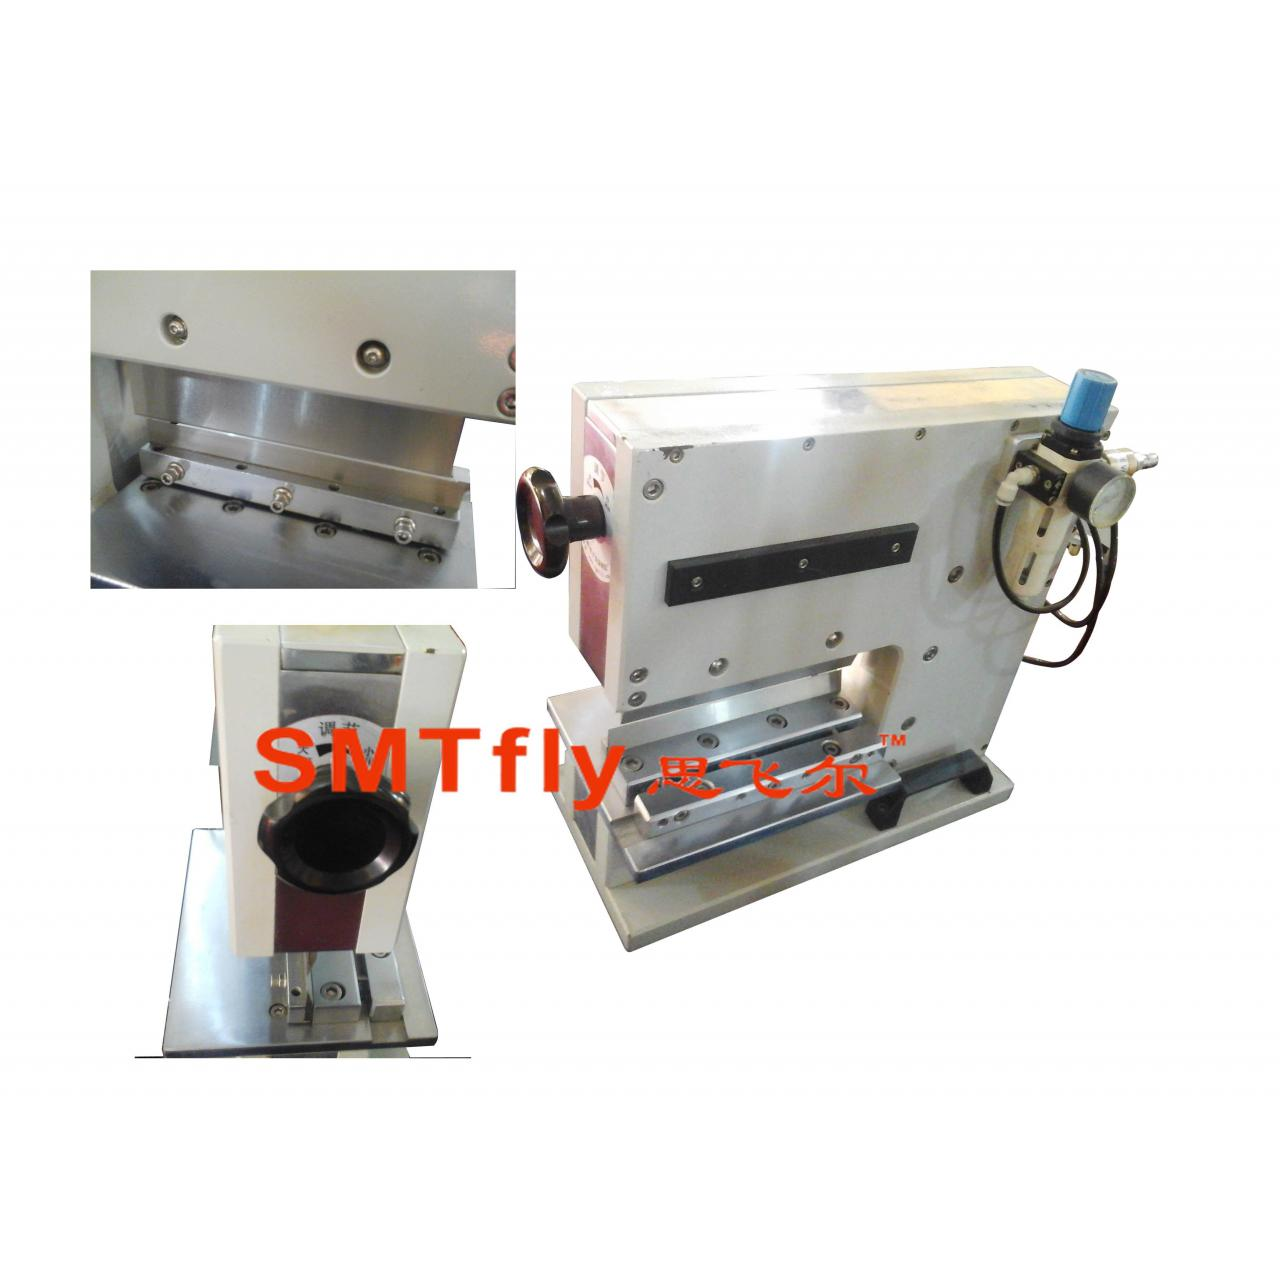 PCB separator Household appliances pcb cutter,SMTfly-200J Manufactures